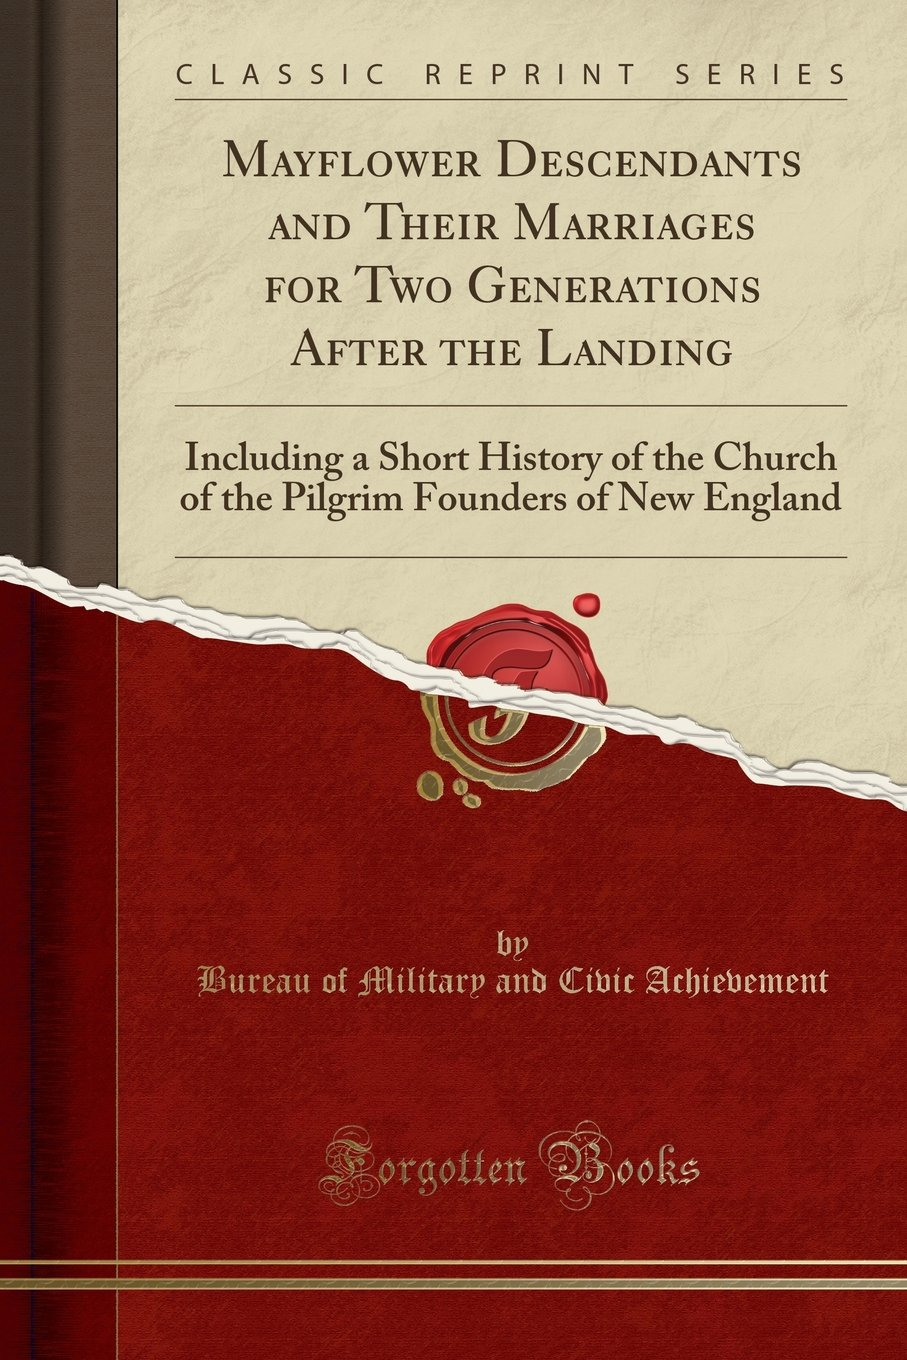 Download Mayflower Descendants and Their Marriages, for Two Generations After the Landing: Including a Short History of the Church of the Pilgrim Founders of New England (Classic Reprint) pdf